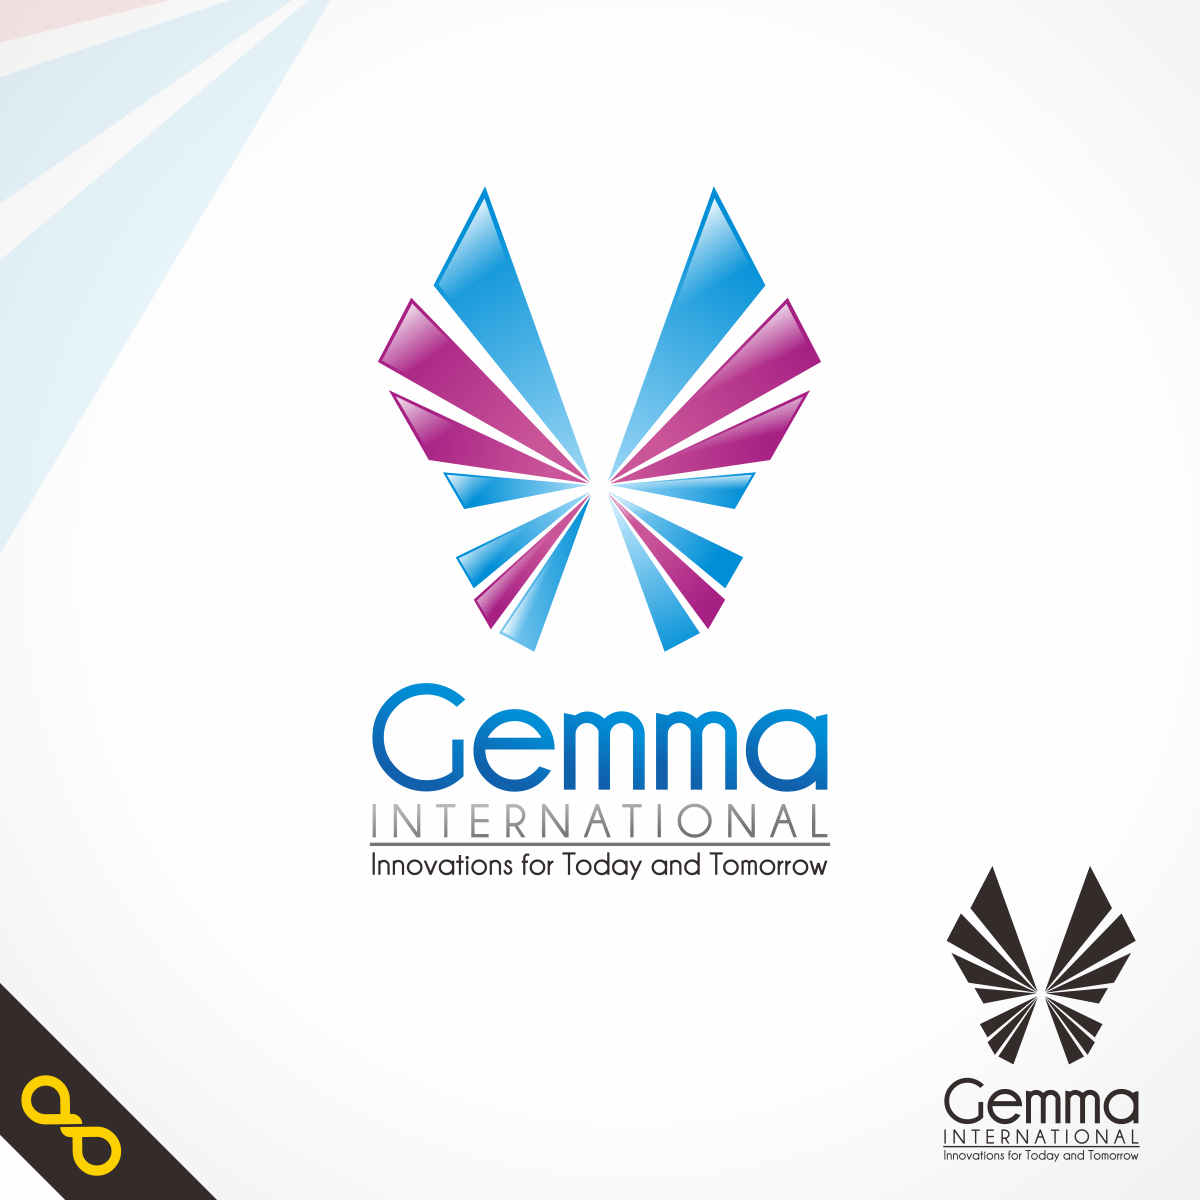 Logo Design by PJD - Entry No. 26 in the Logo Design Contest Artistic Logo Design for Gemma International.